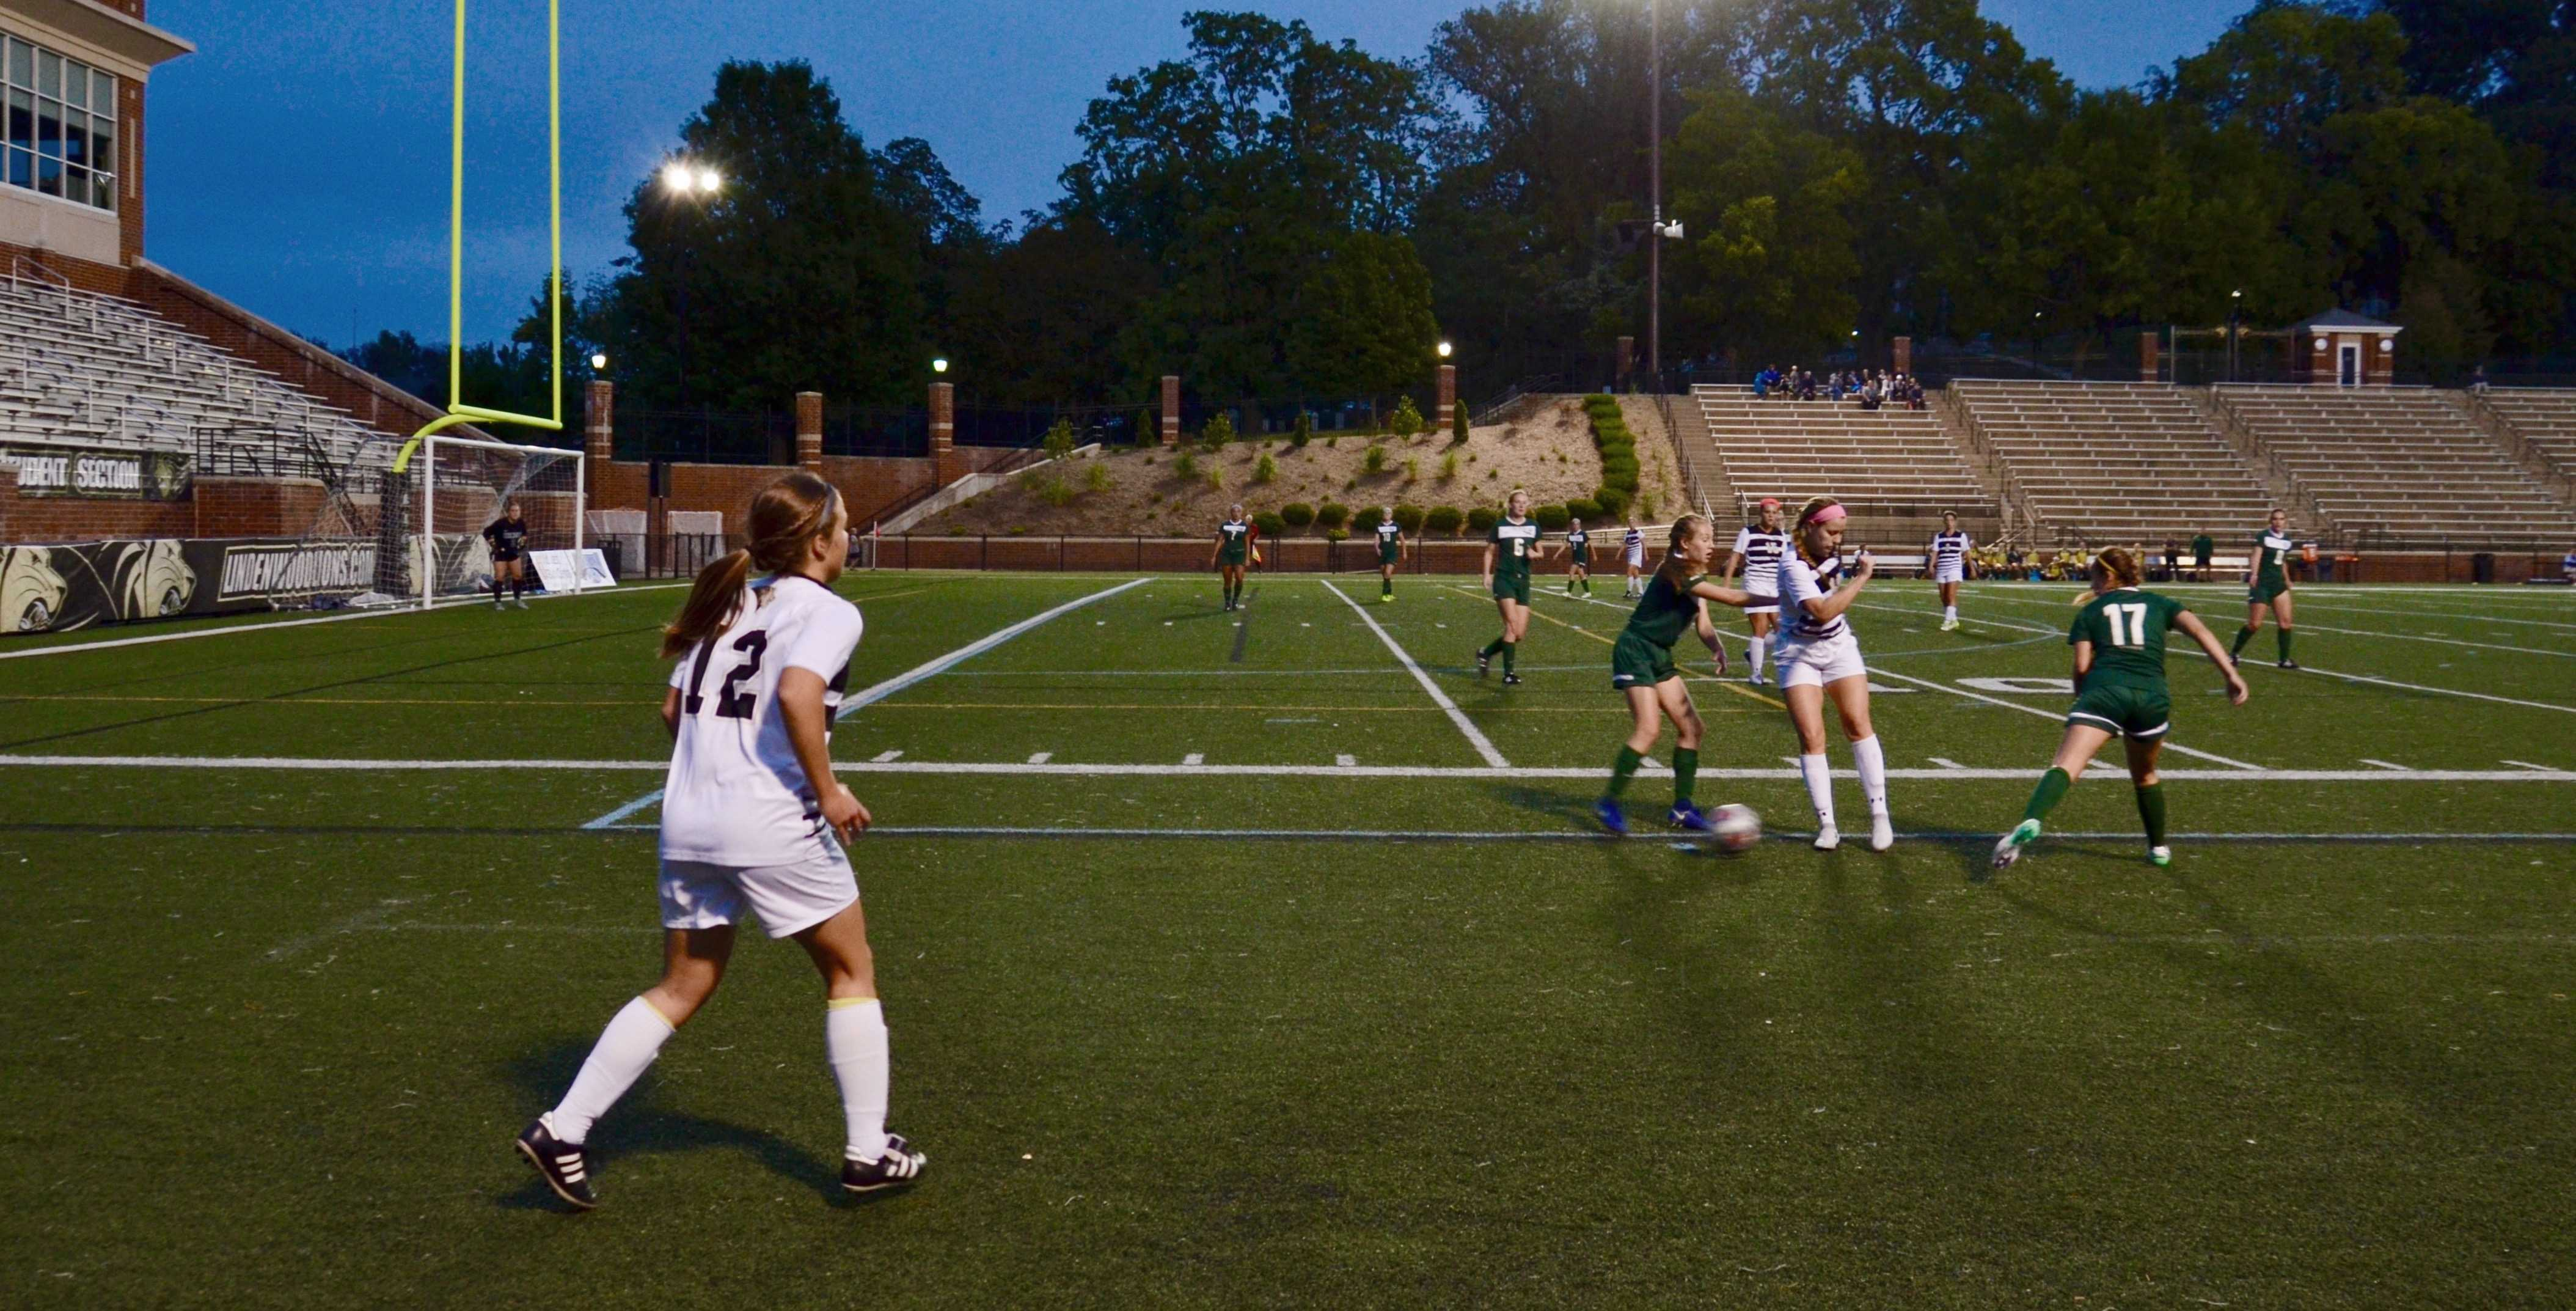 Becky Roberts gains possession over the ball during the game against Missouri S&T on Sept 12. Roberts scored on Friday night in 2-1 loss.  Photo by Rolando Dupuy